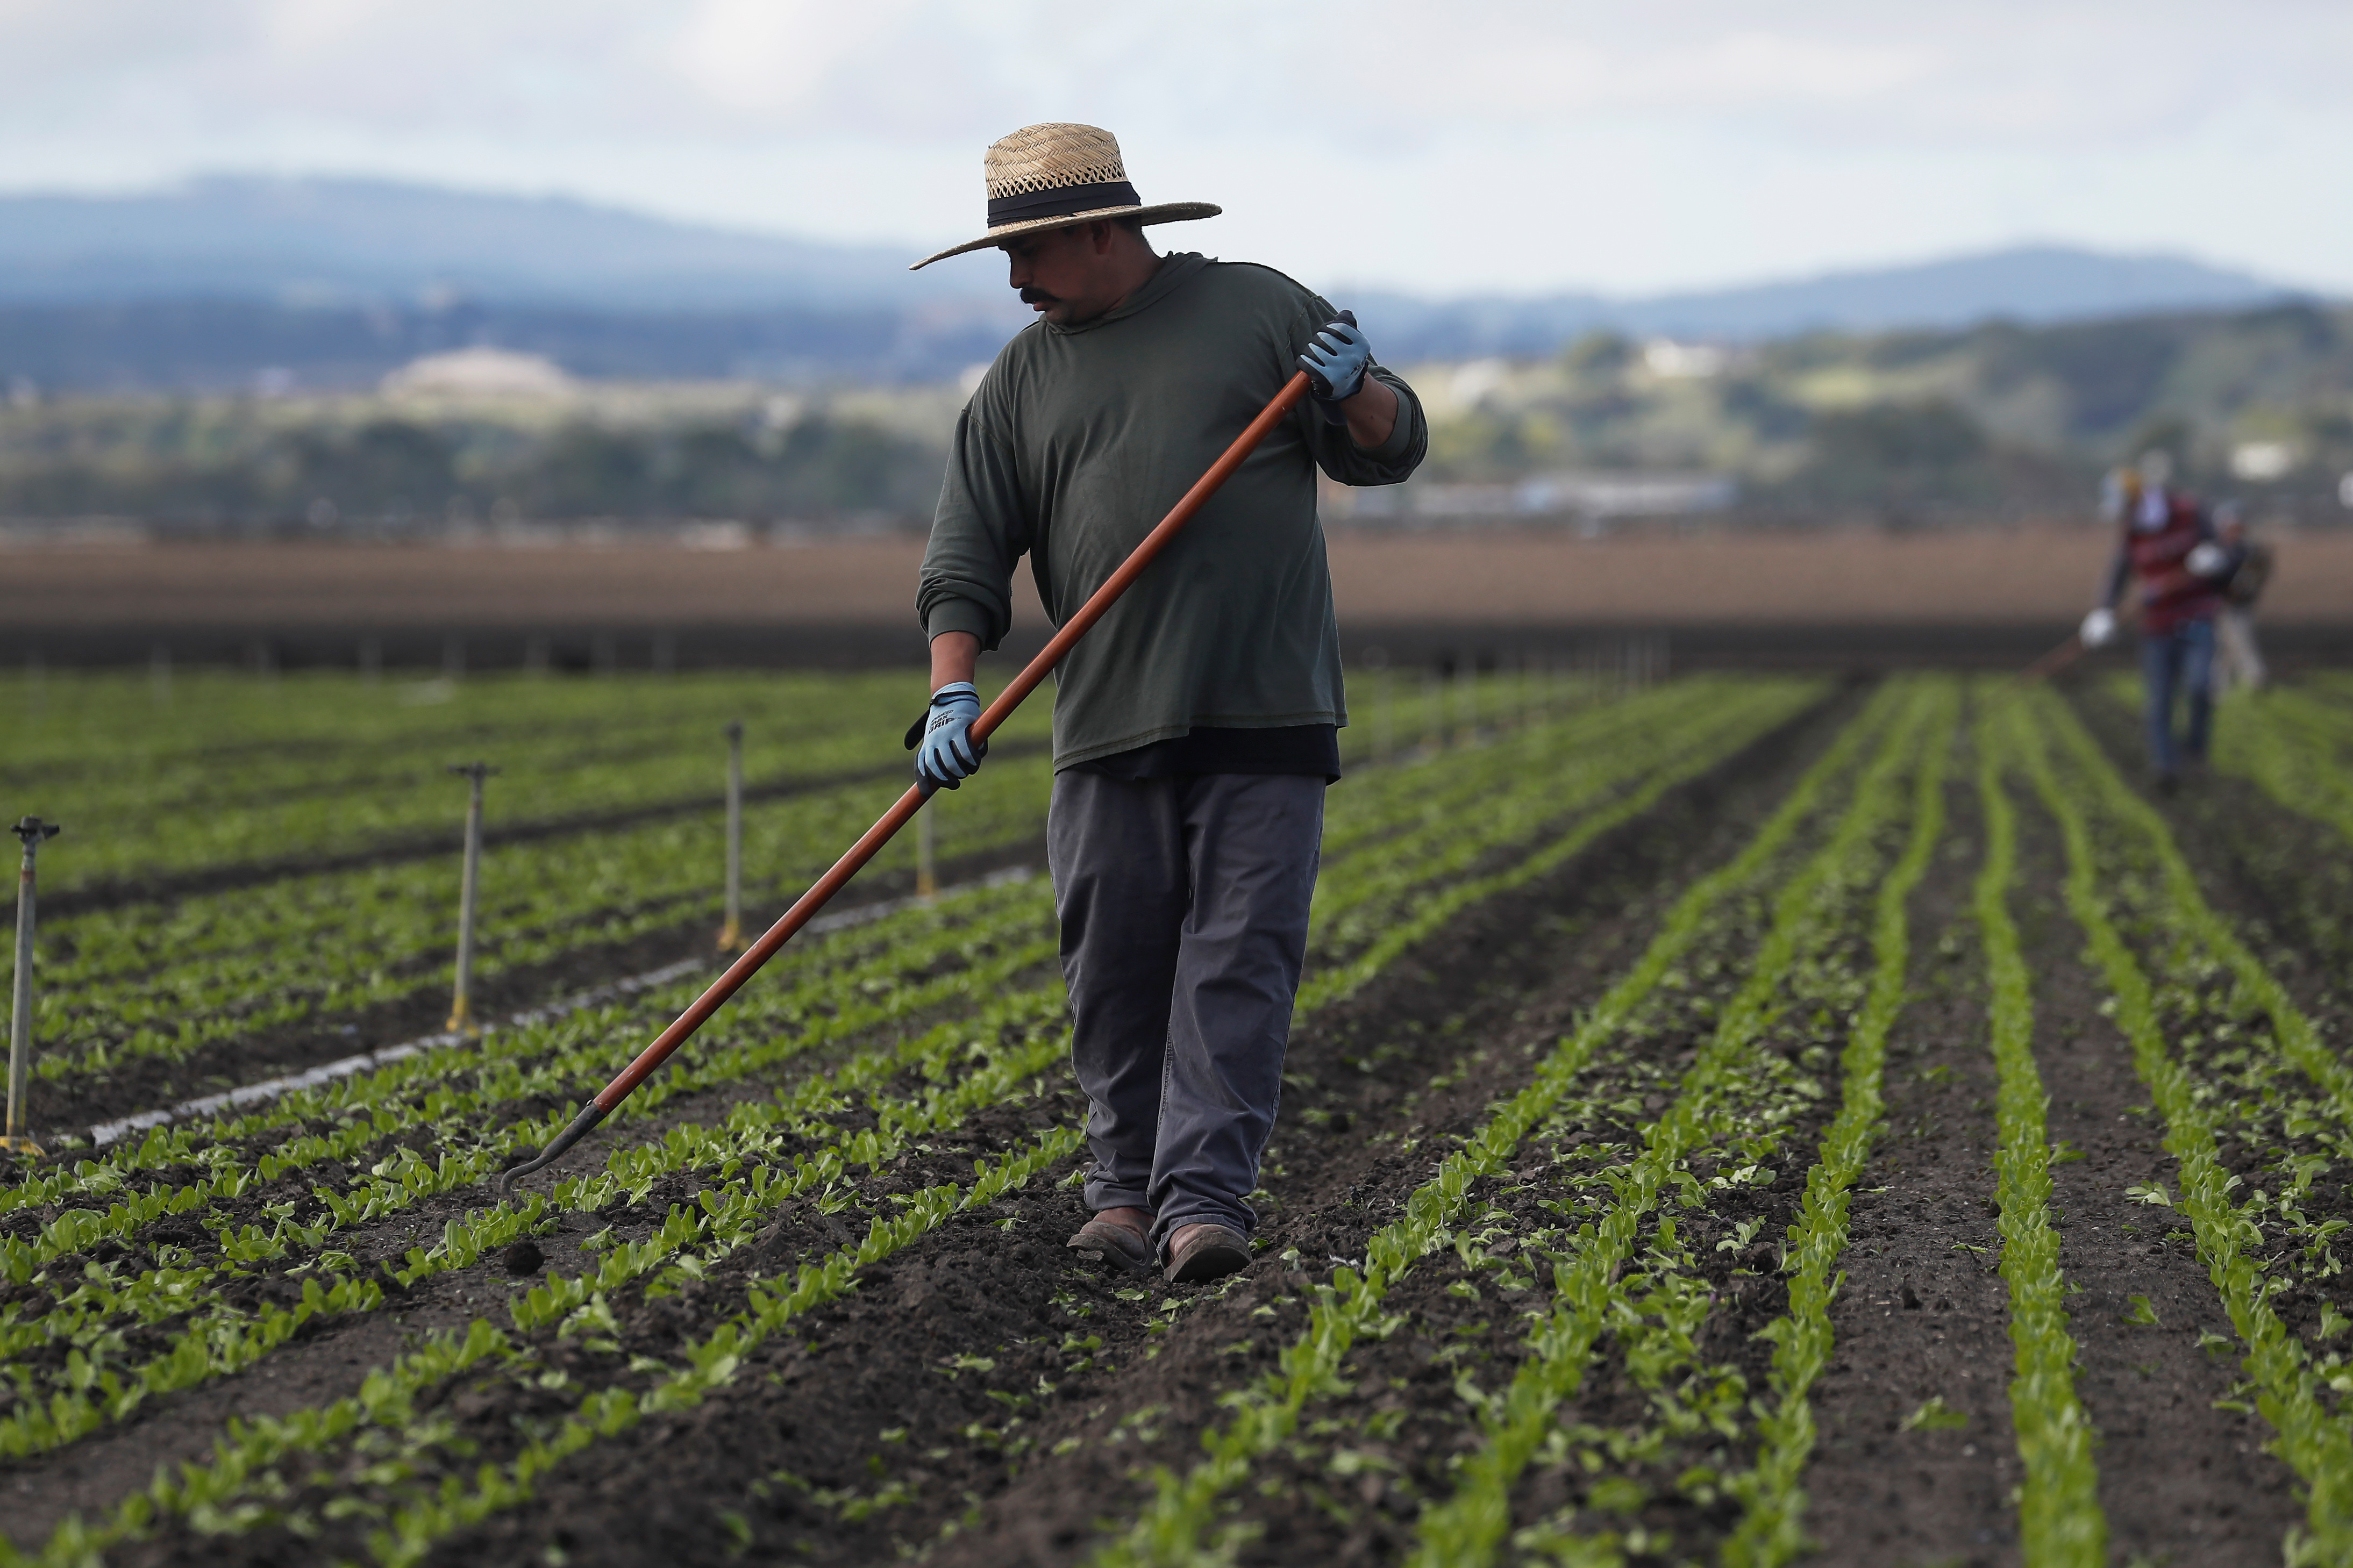 Migrant worker Cesar Lopez, 33, cleans the fields amid an outbreak of the coronavirus disease (COVID-19), in the Salinas Valley near Salinas, California, U.S., March 30, 2020. Picture taken March 30, 2020. REUTERS/Shannon Stapleton